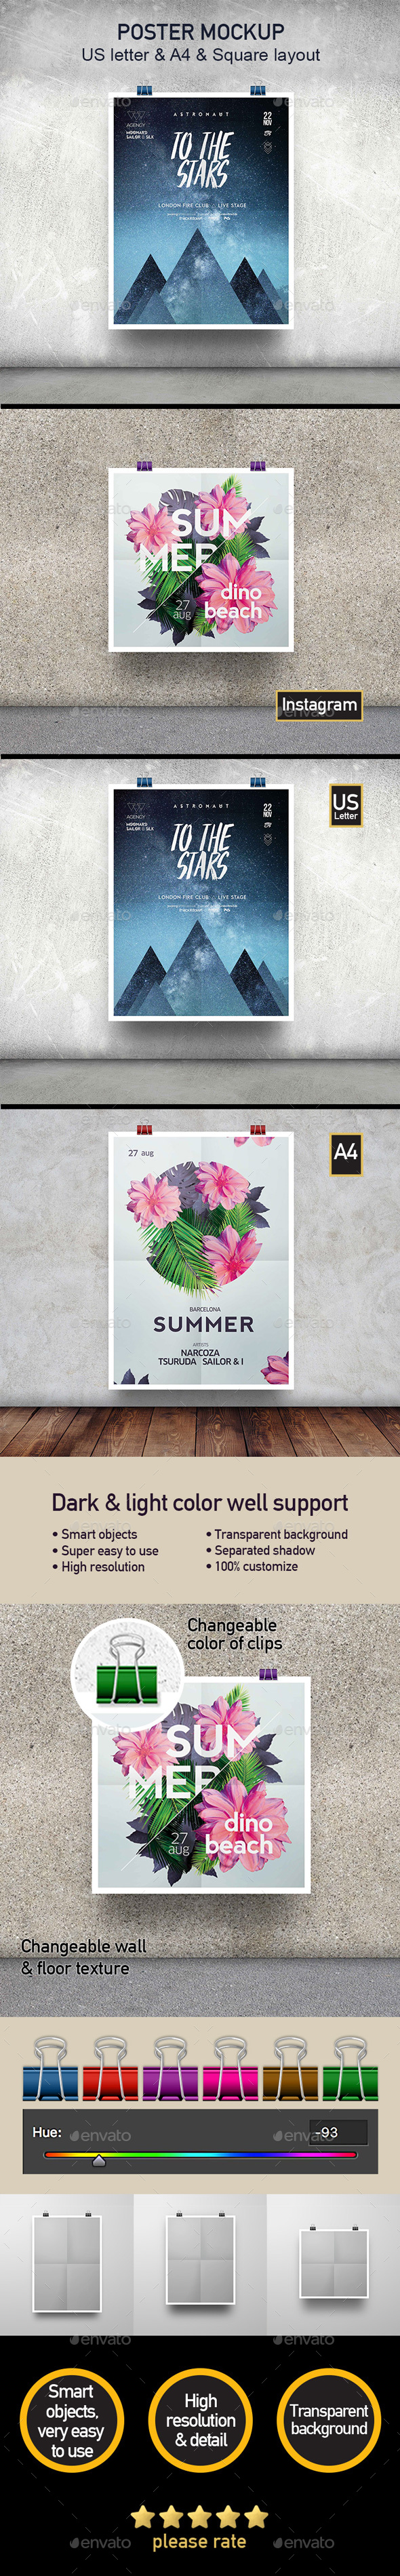 Poster Mockup - Minimal Style - Set of 3 Different Sizes - Posters Print